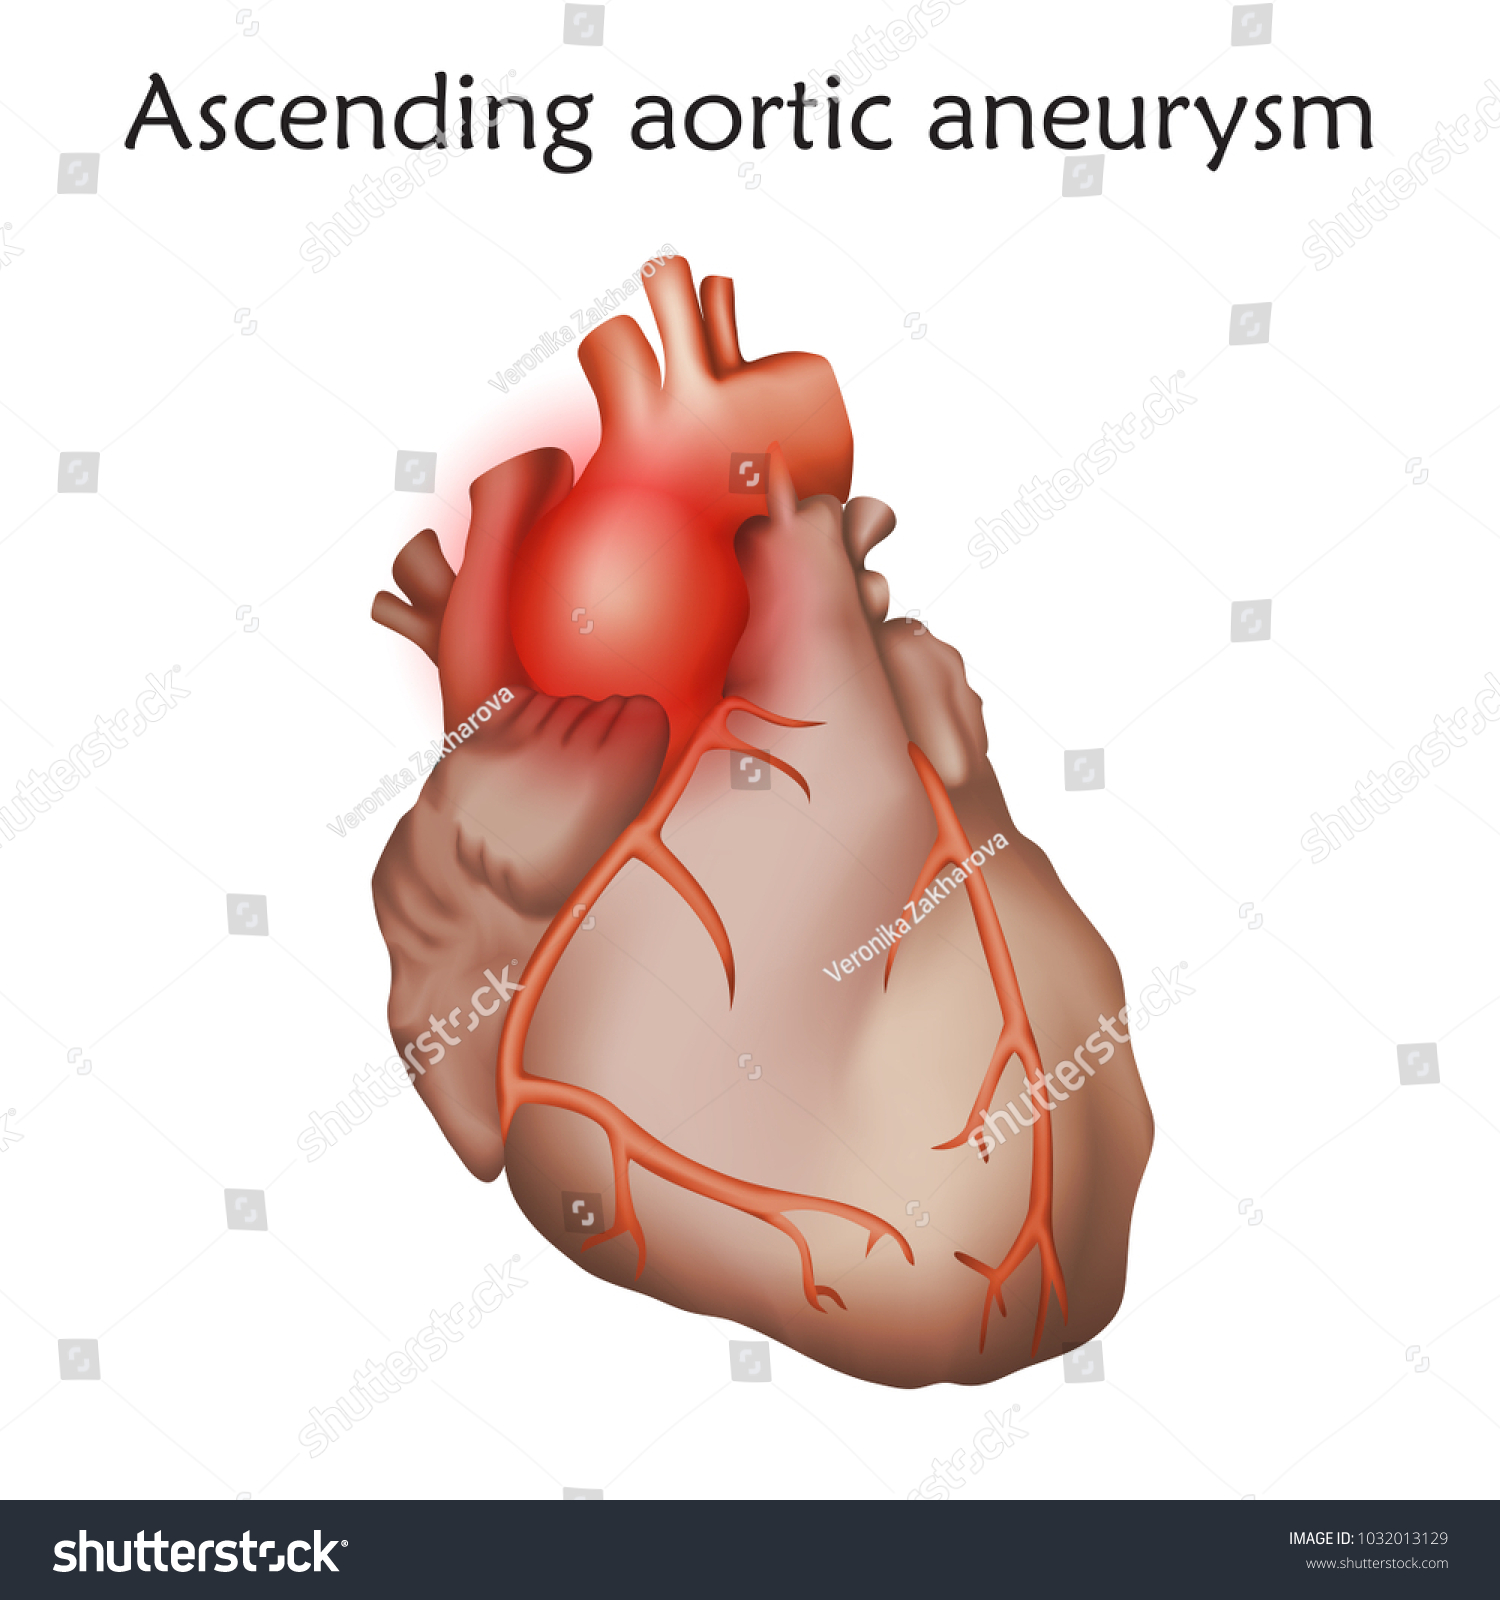 Ascending Aortic Aneurysm Damaged Heart Muscle Stock Vector